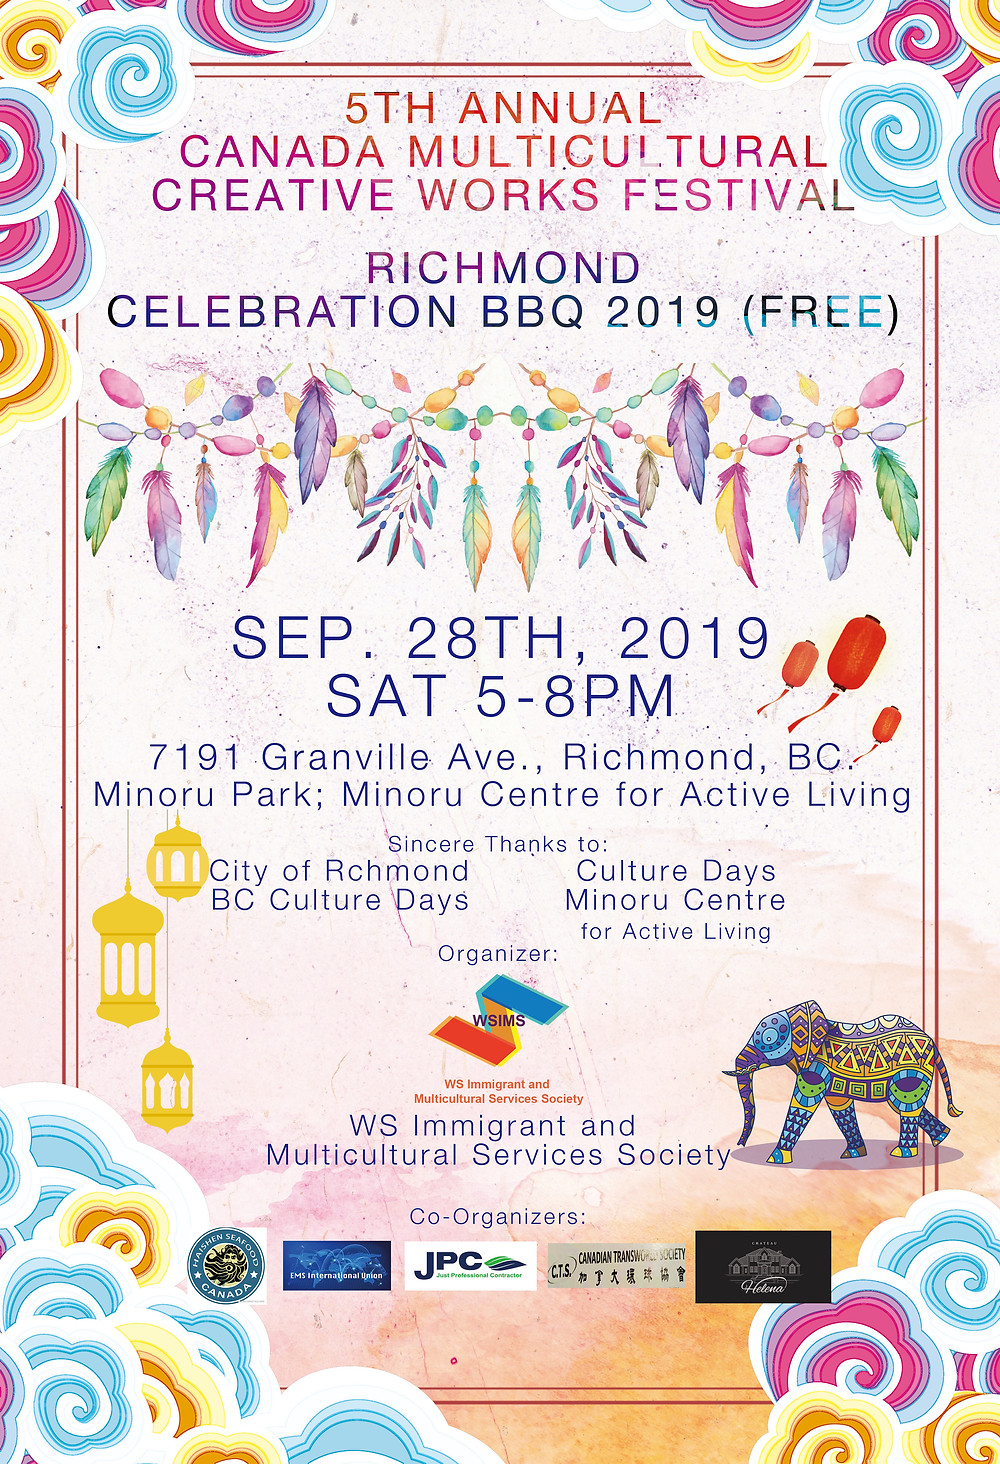 Share a Good Deed with the World --Canada Multicultural Creative Works Festival 2019 & 2019 Richmond Celebration BBQ